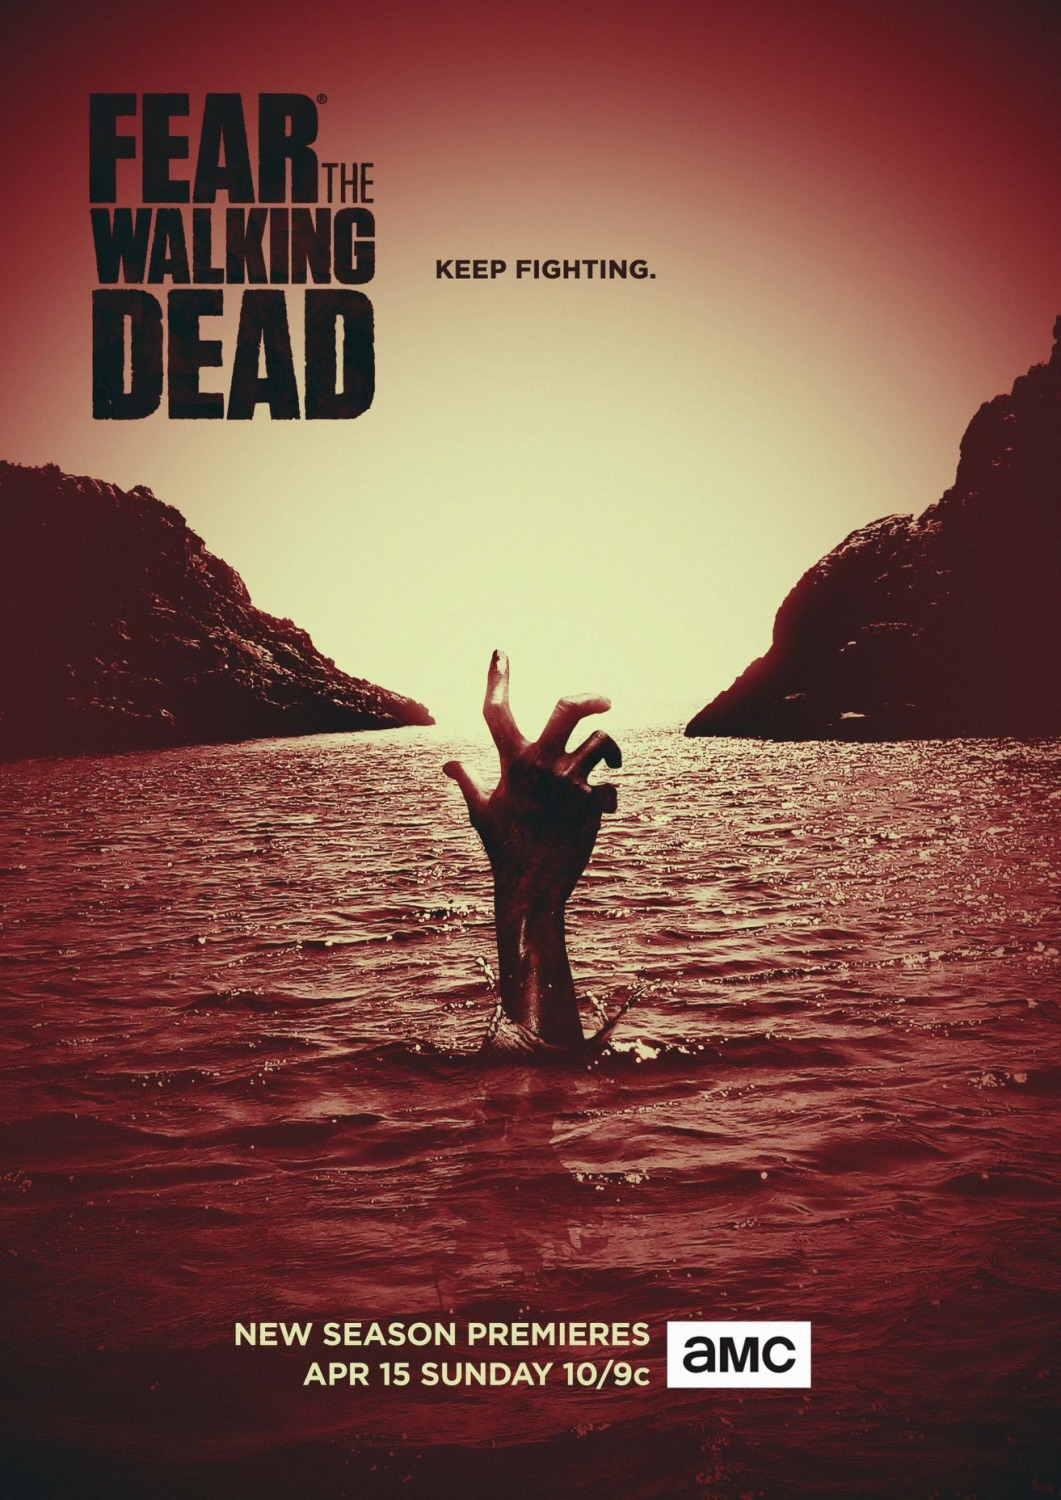 Fear.The.Walking.Dead.S04E05.German.WebRip.x264-AIDA